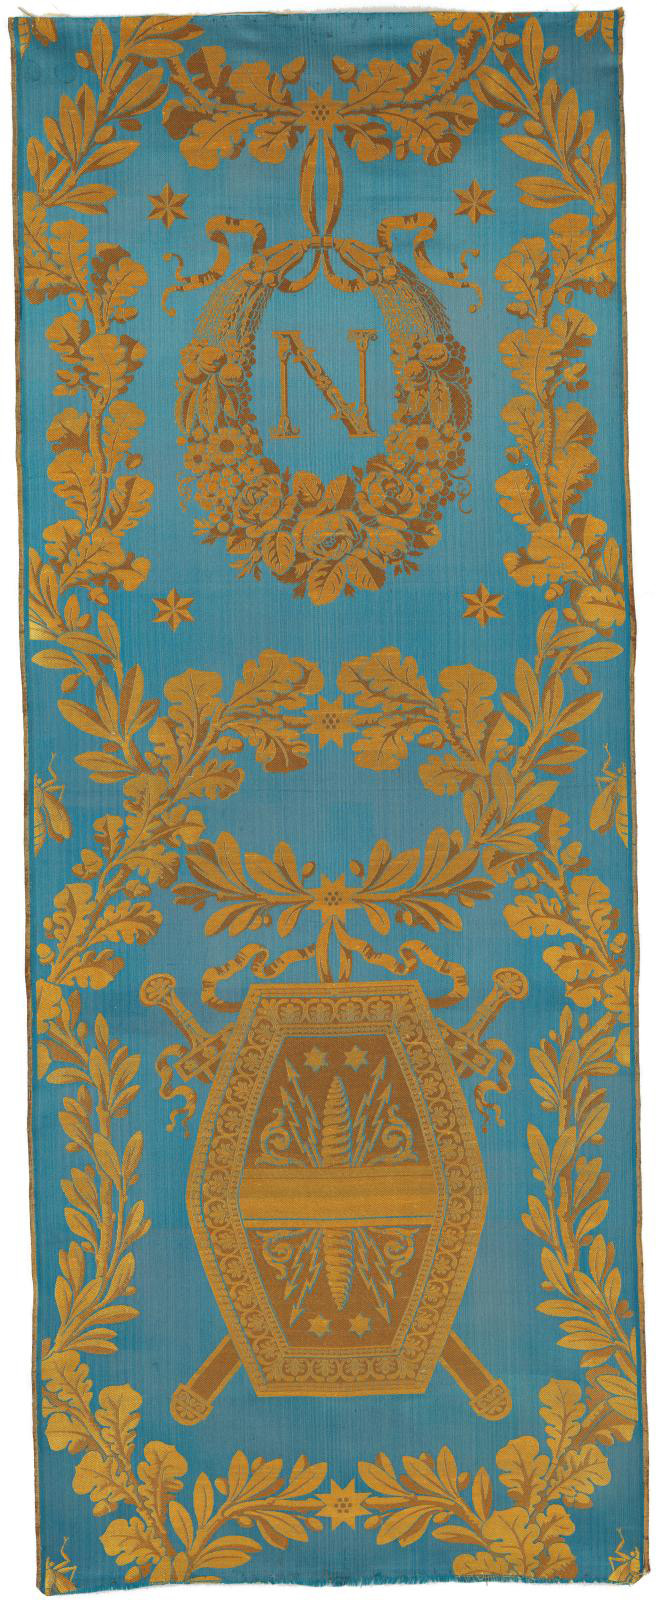 Blue damask hanging for the Emperor's first salon at the Palais de Meudon (detail), by Grand Frères after Alexandre Brongniart, 1809, Mobi